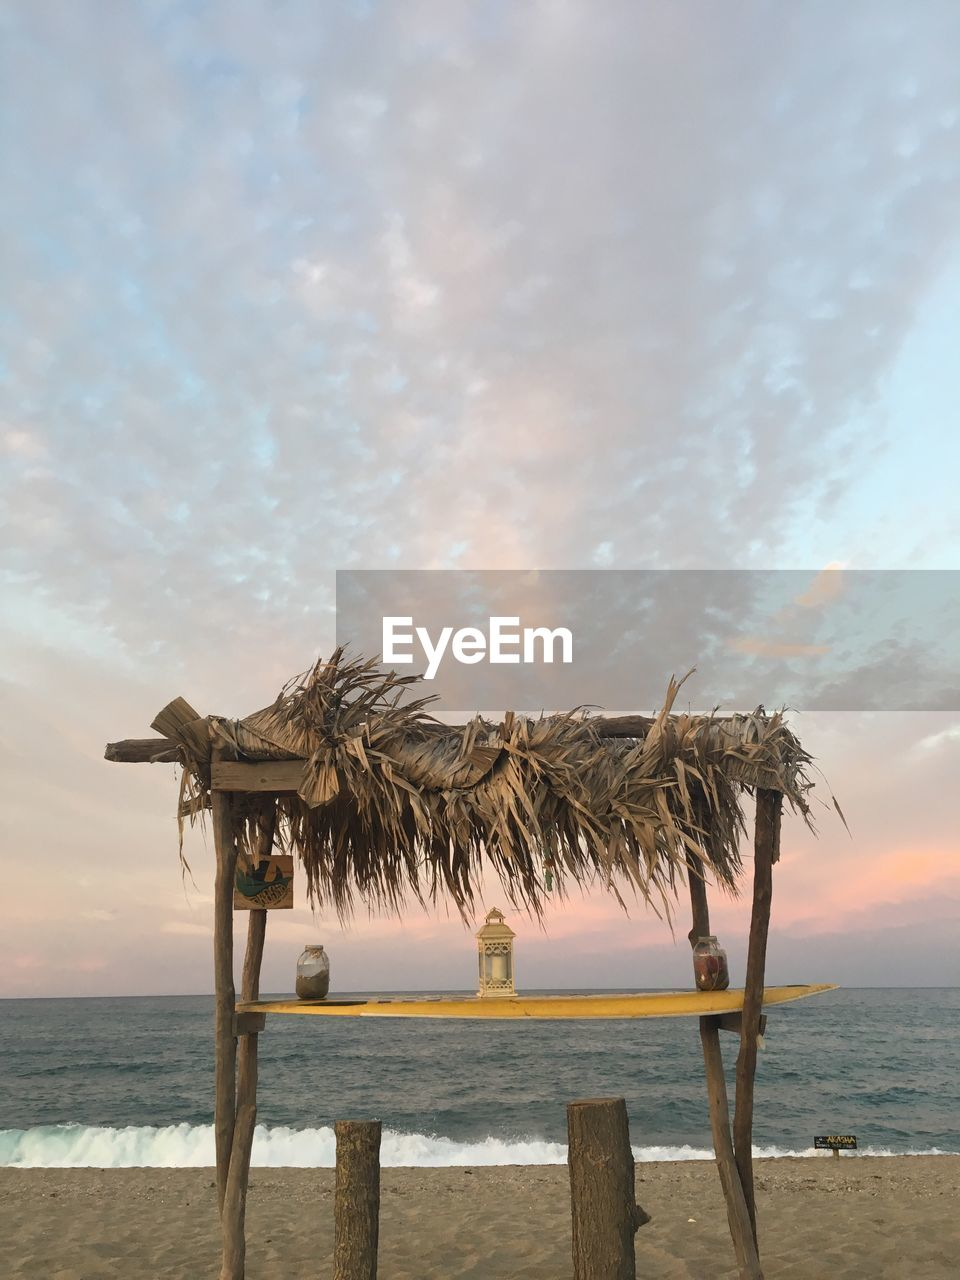 water, sea, sky, beach, land, cloud - sky, scenics - nature, beauty in nature, horizon over water, tranquil scene, tranquility, horizon, nature, thatched roof, sand, roof, no people, non-urban scene, palm tree, outdoors, wooden post